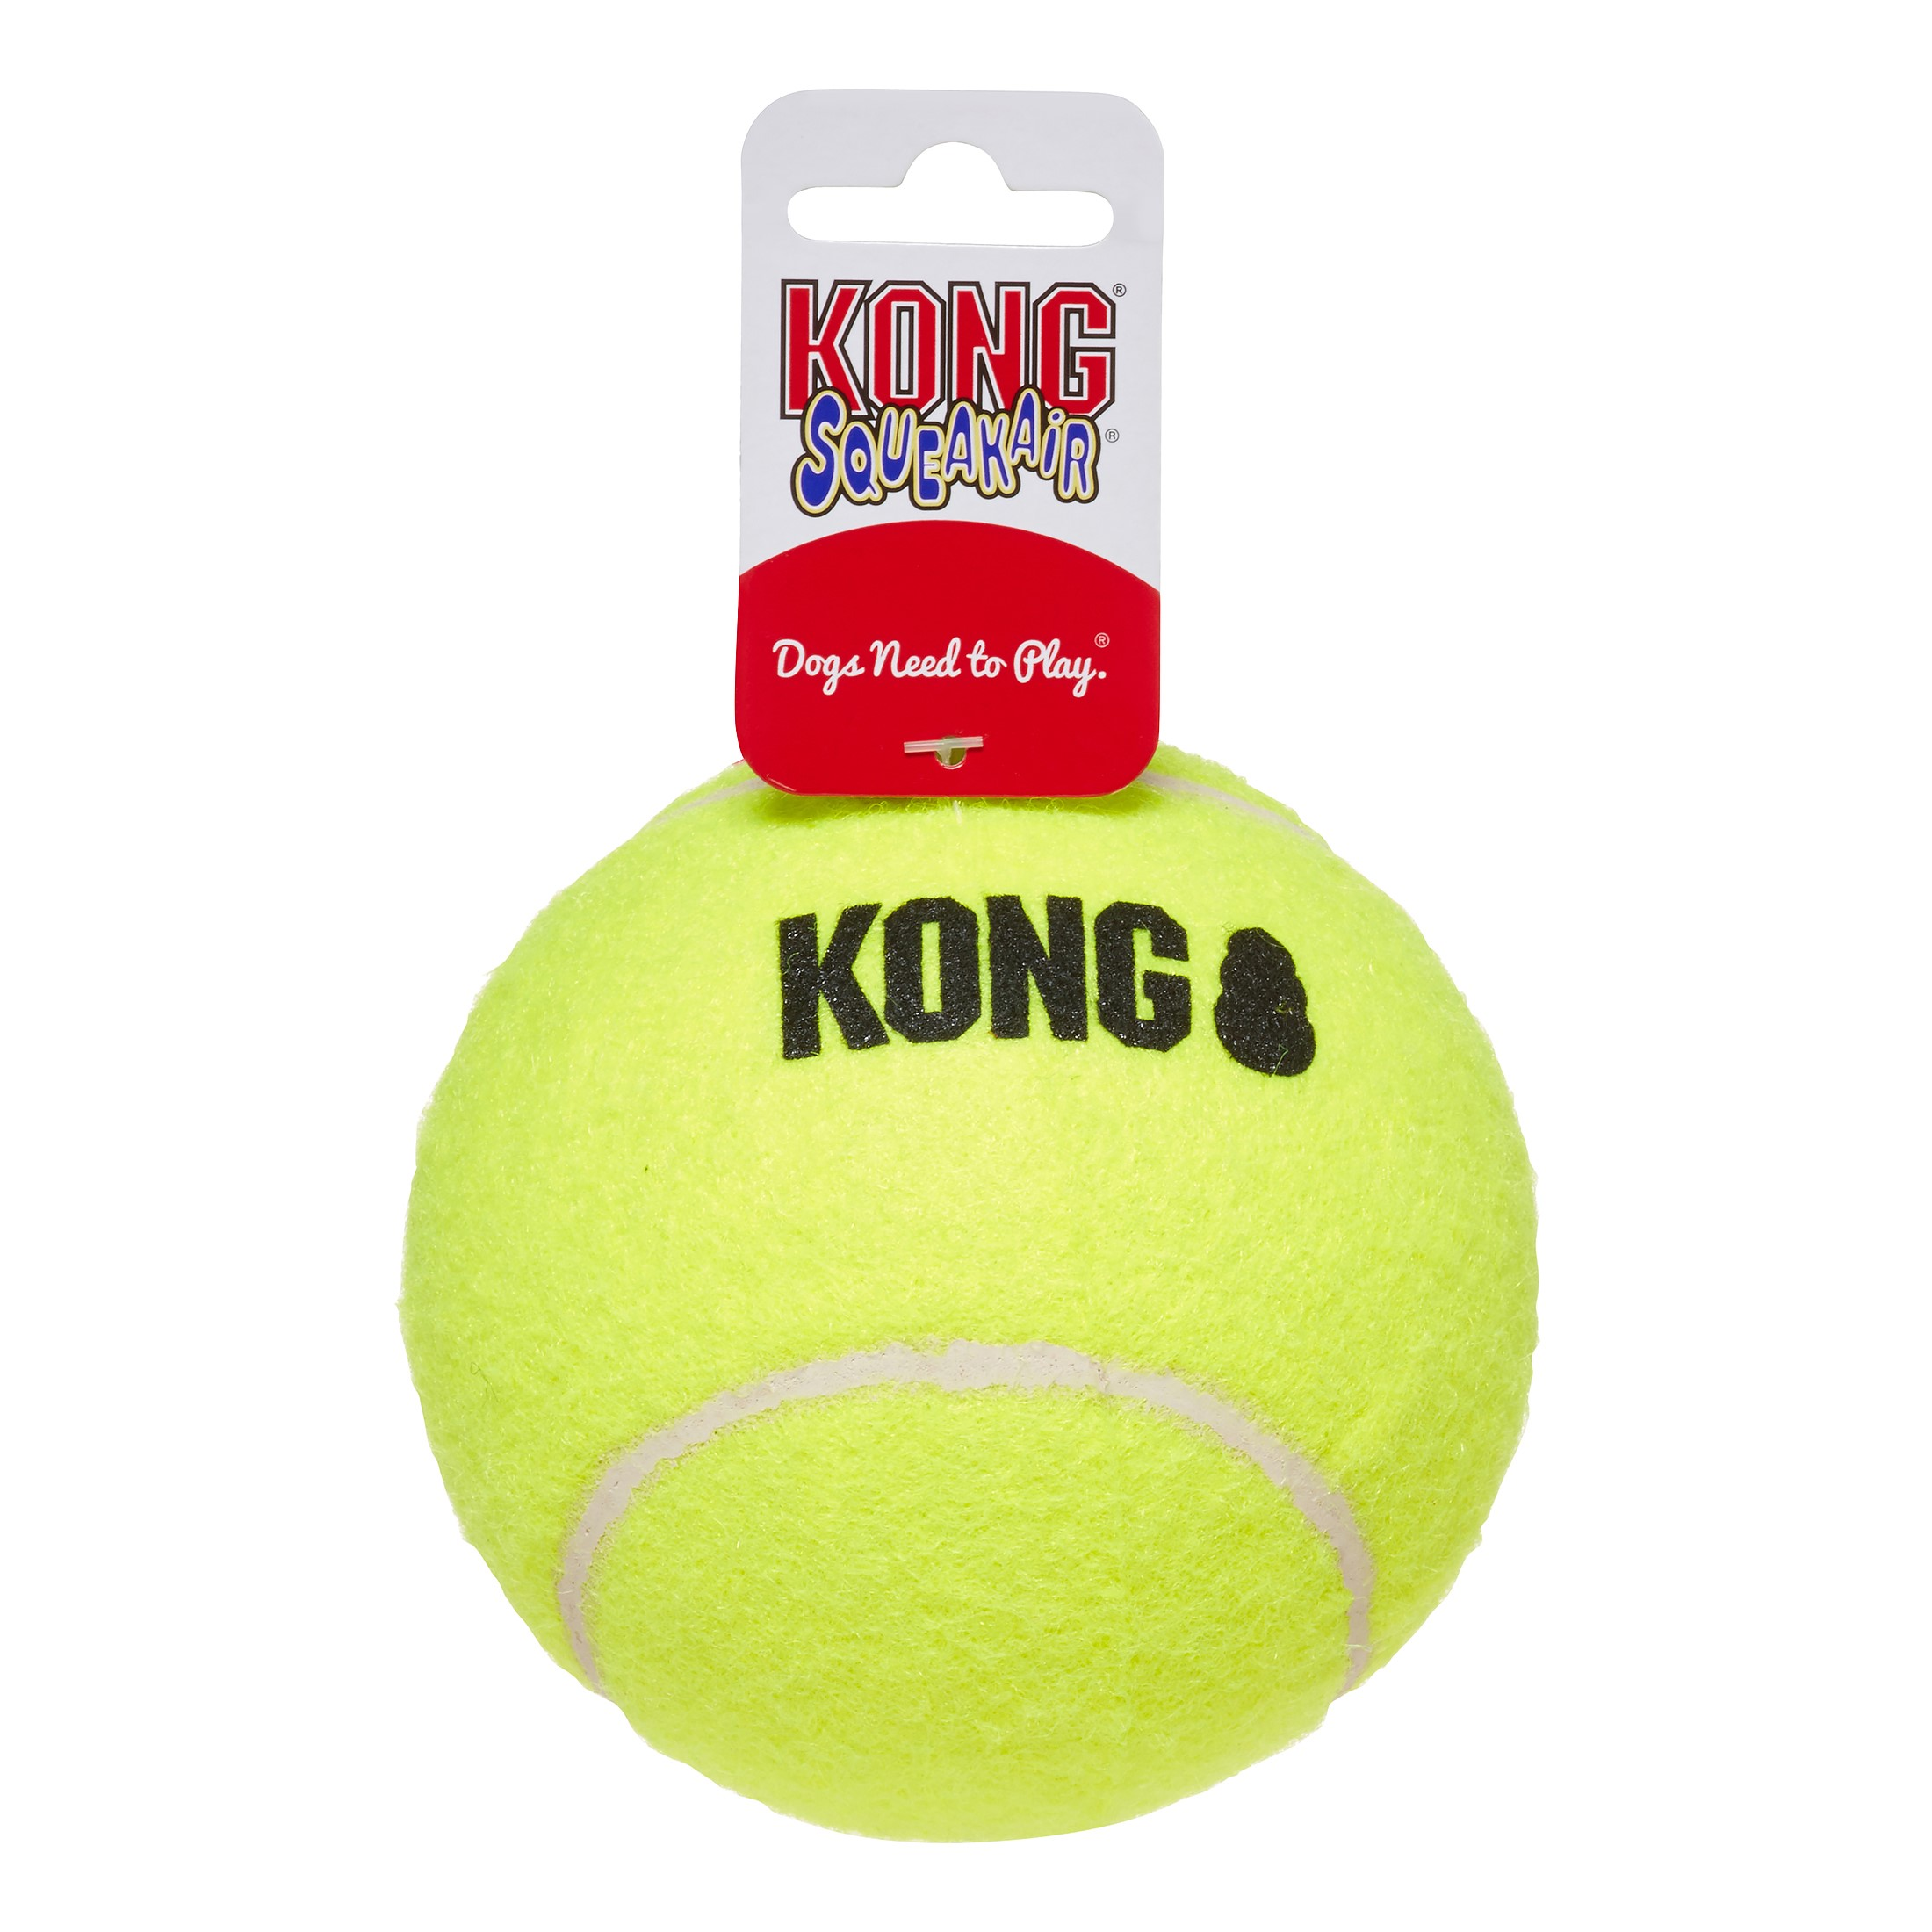 KONG Airdog Squeaker Ball Dog Toy Yellow, Extra Large